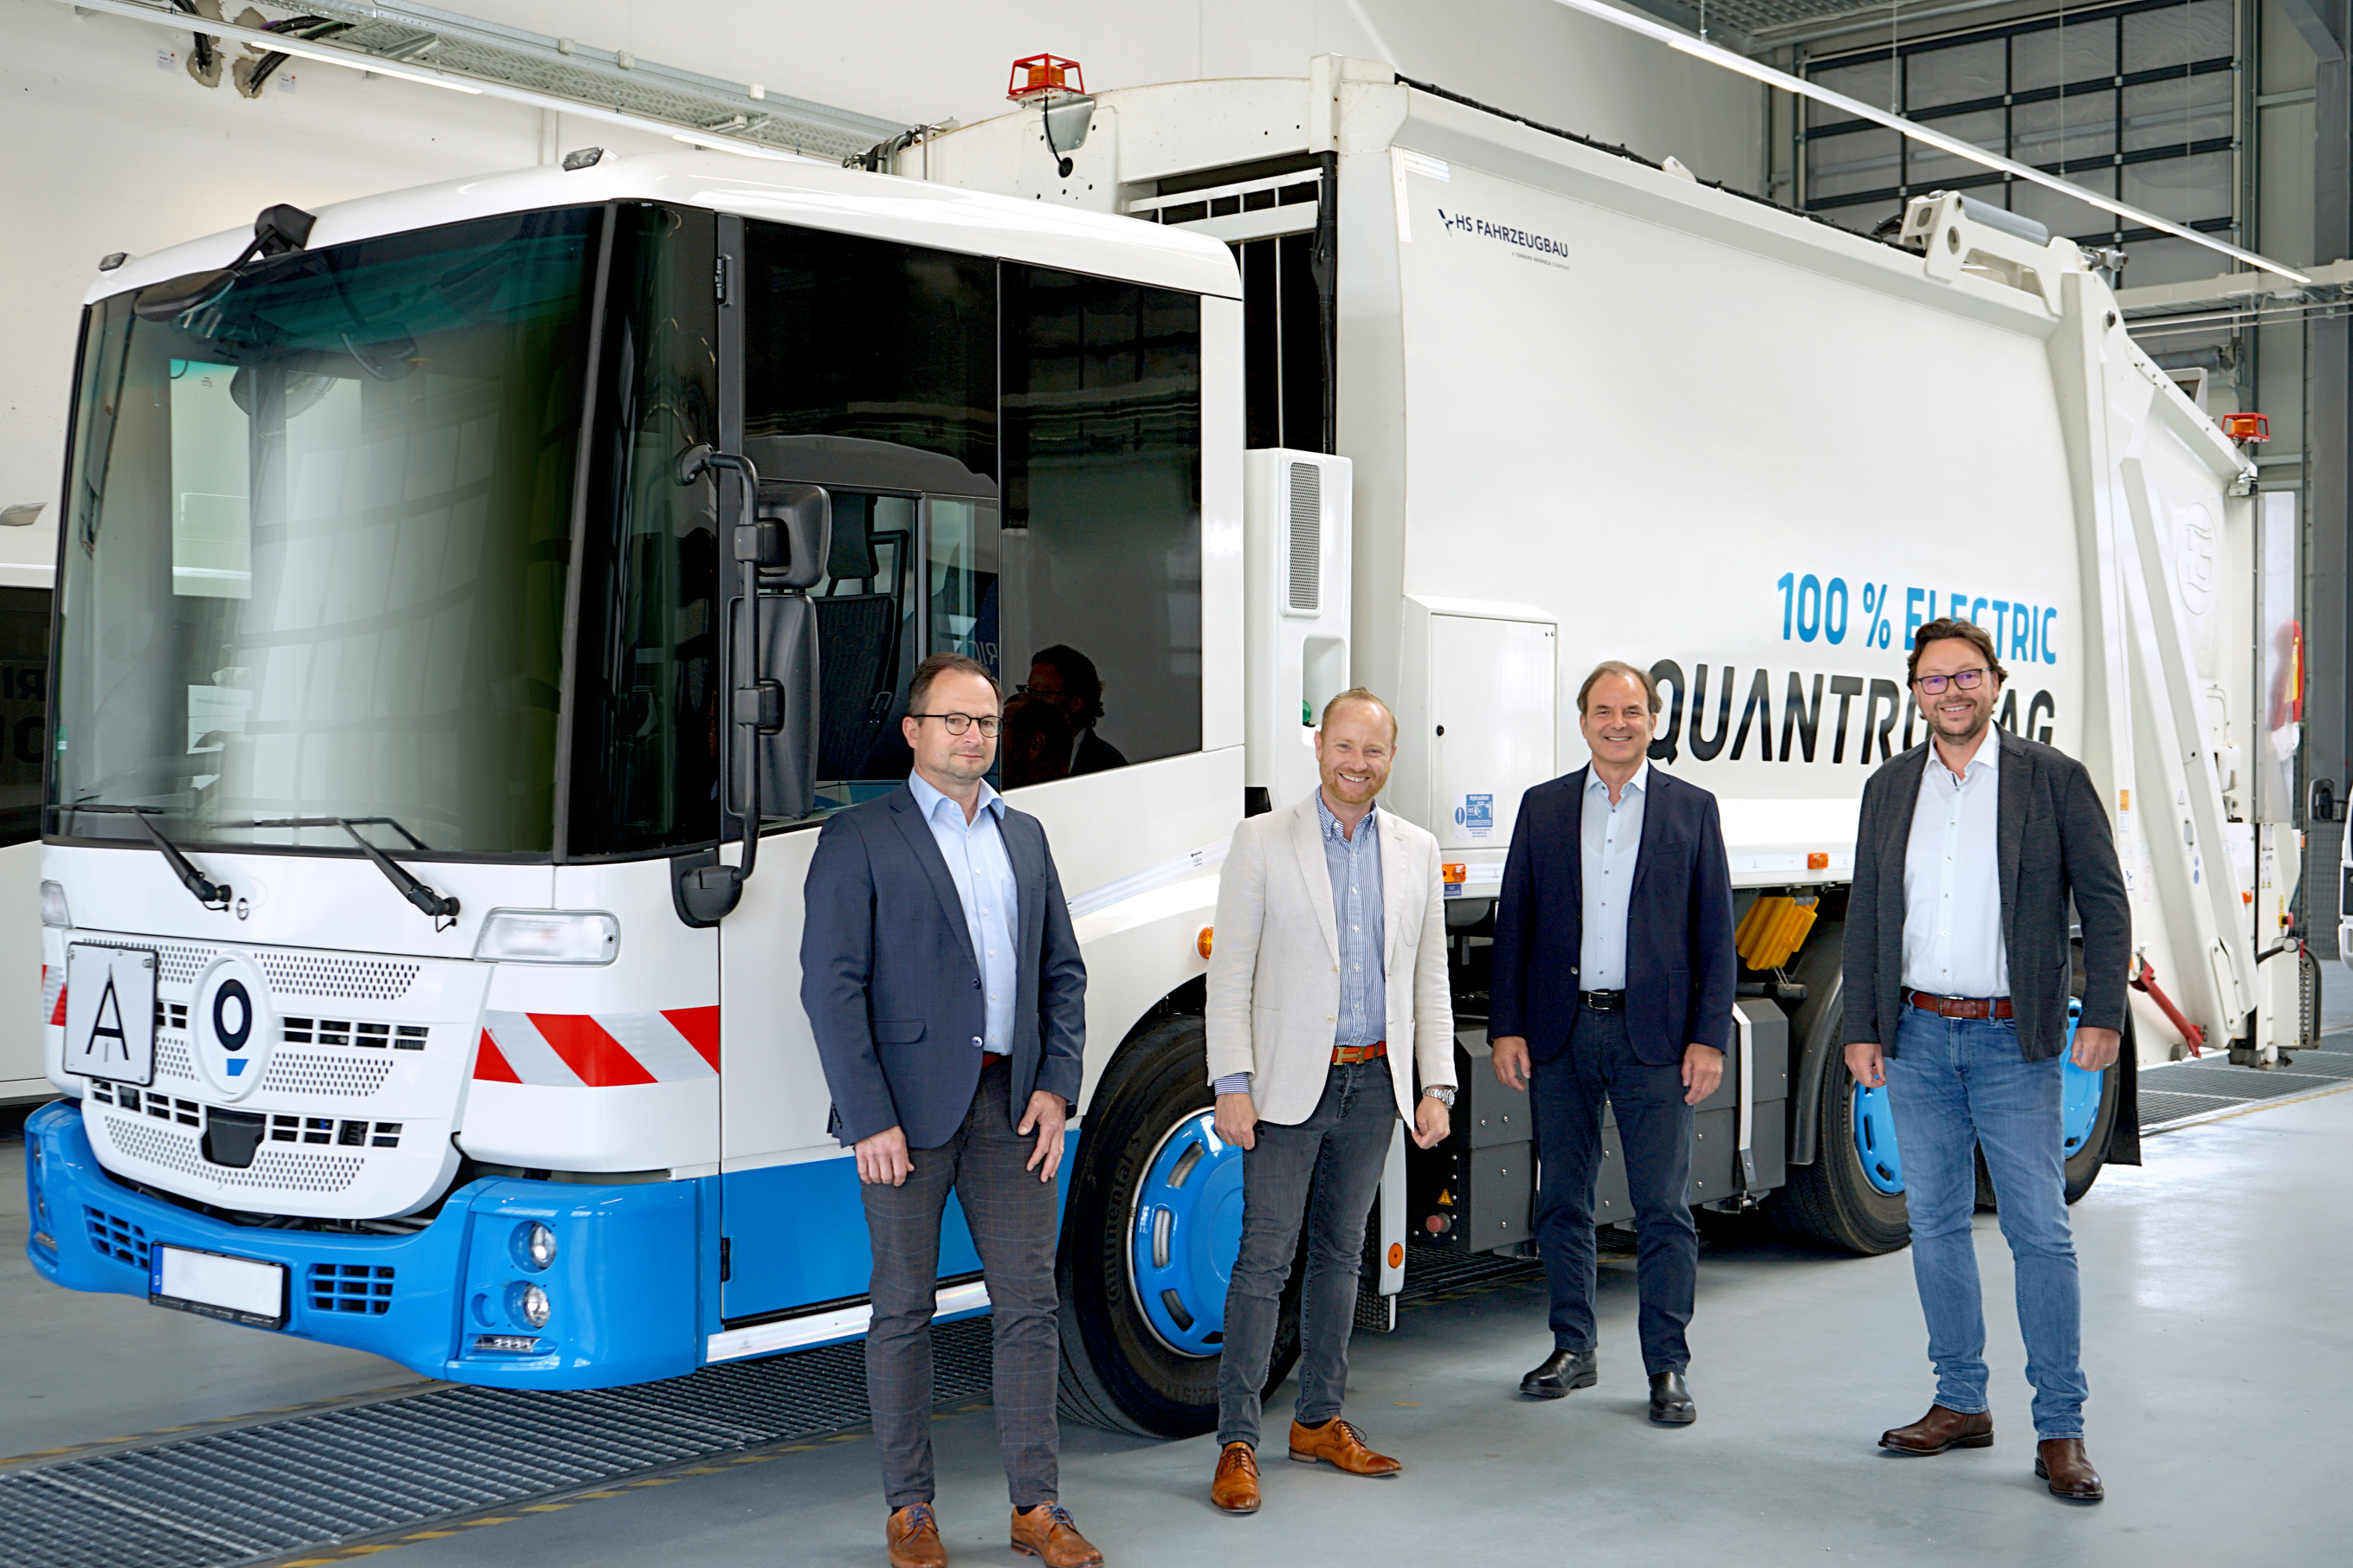 Signing of the cooperation agreement between Quantron AG and H2Go GmbH  From left: Holger Grass, Head of Business Development Quantron AG / Andreas Haller, CEO of Quantron AG / Axel Poblotzki, Managing Director H2Go / Marco Schmidt, Managing Director and Shareholder H2Go